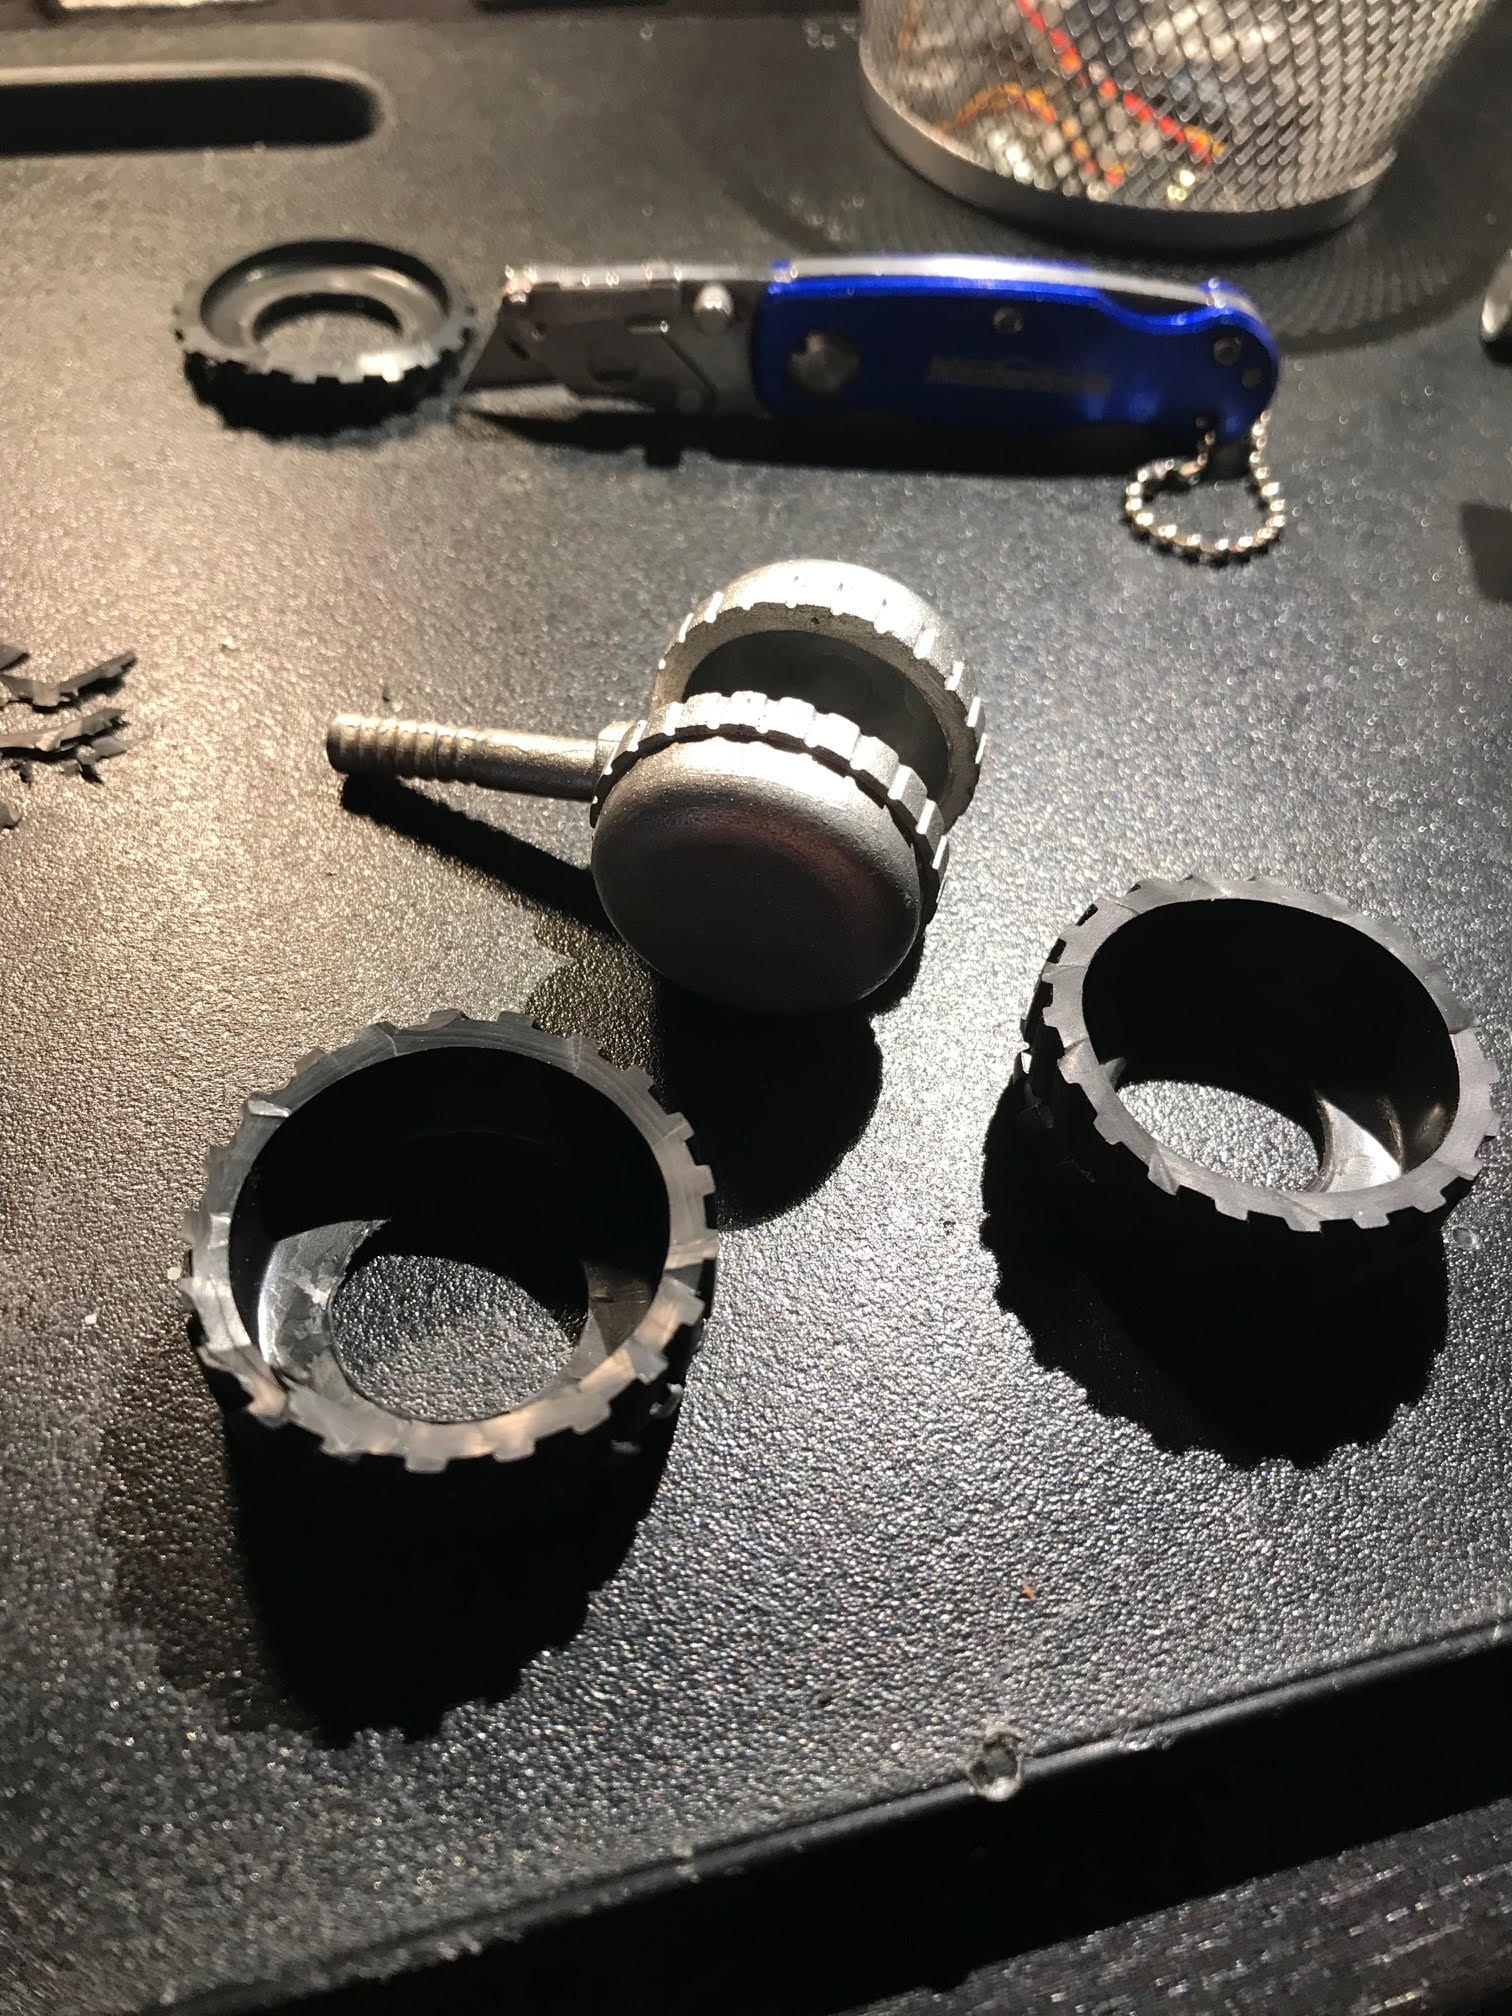 Picture of Modification of the Rear Tire Assembly